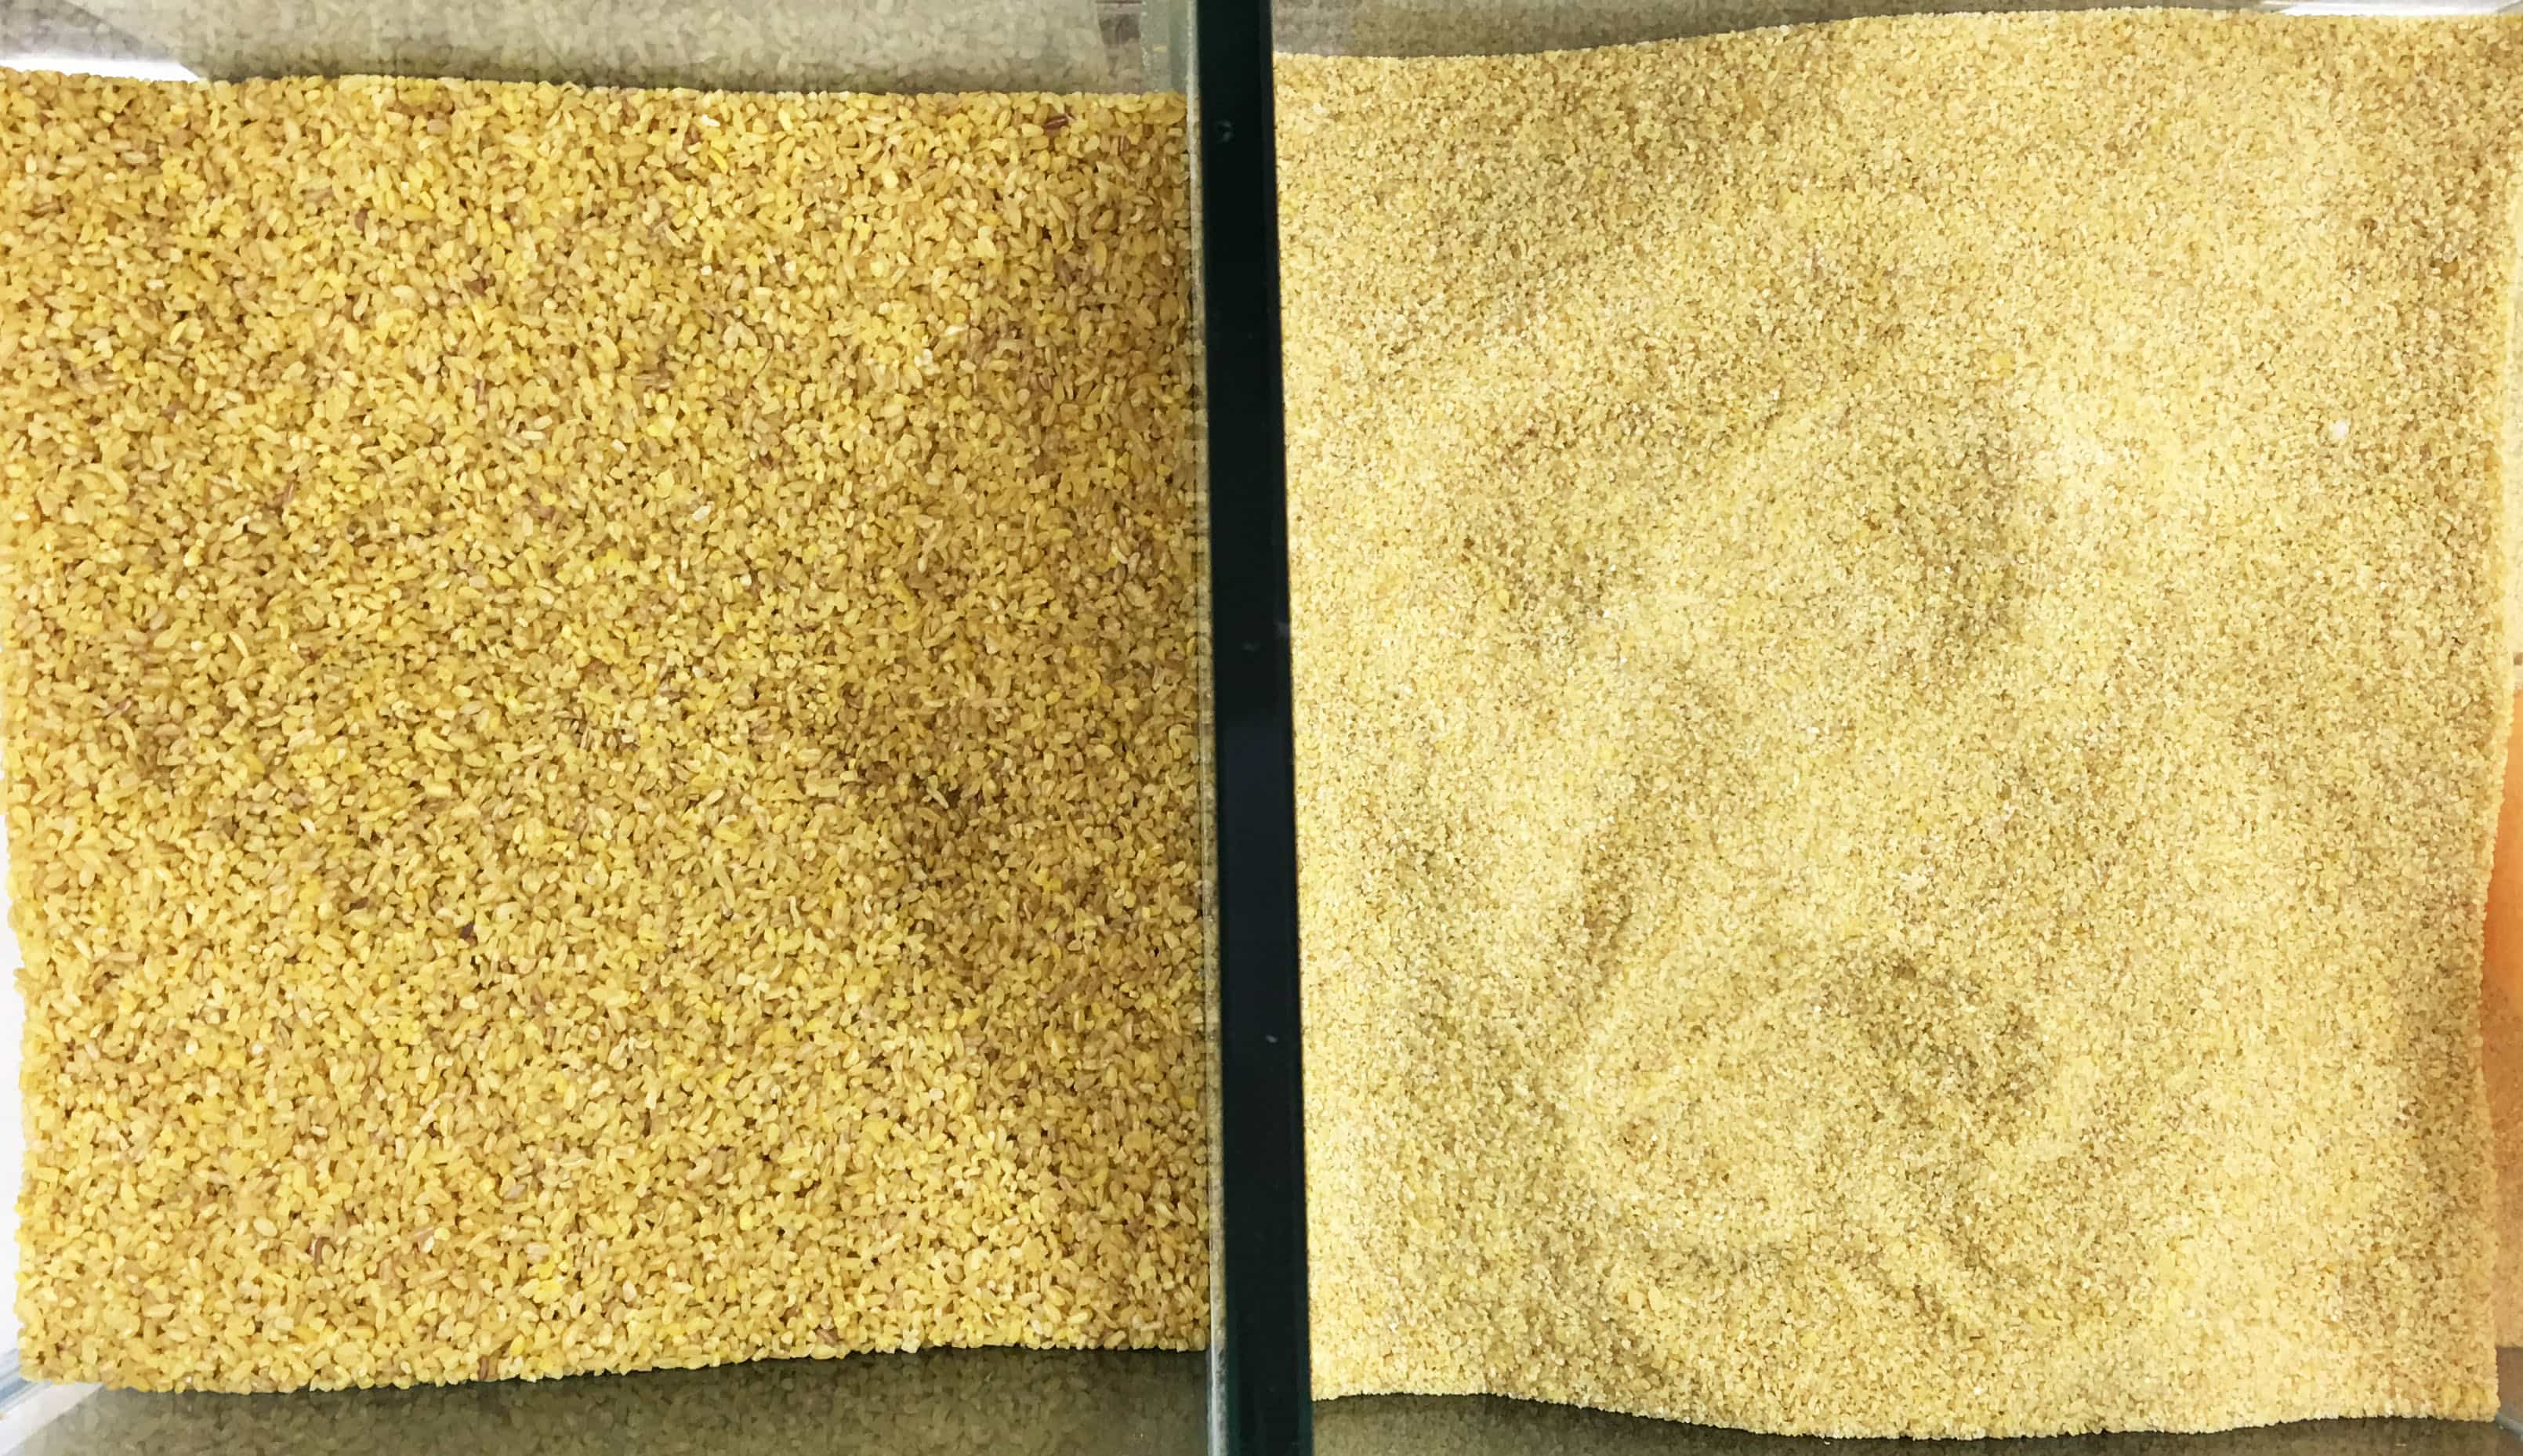 instant bulgur vs fine grain bulgur